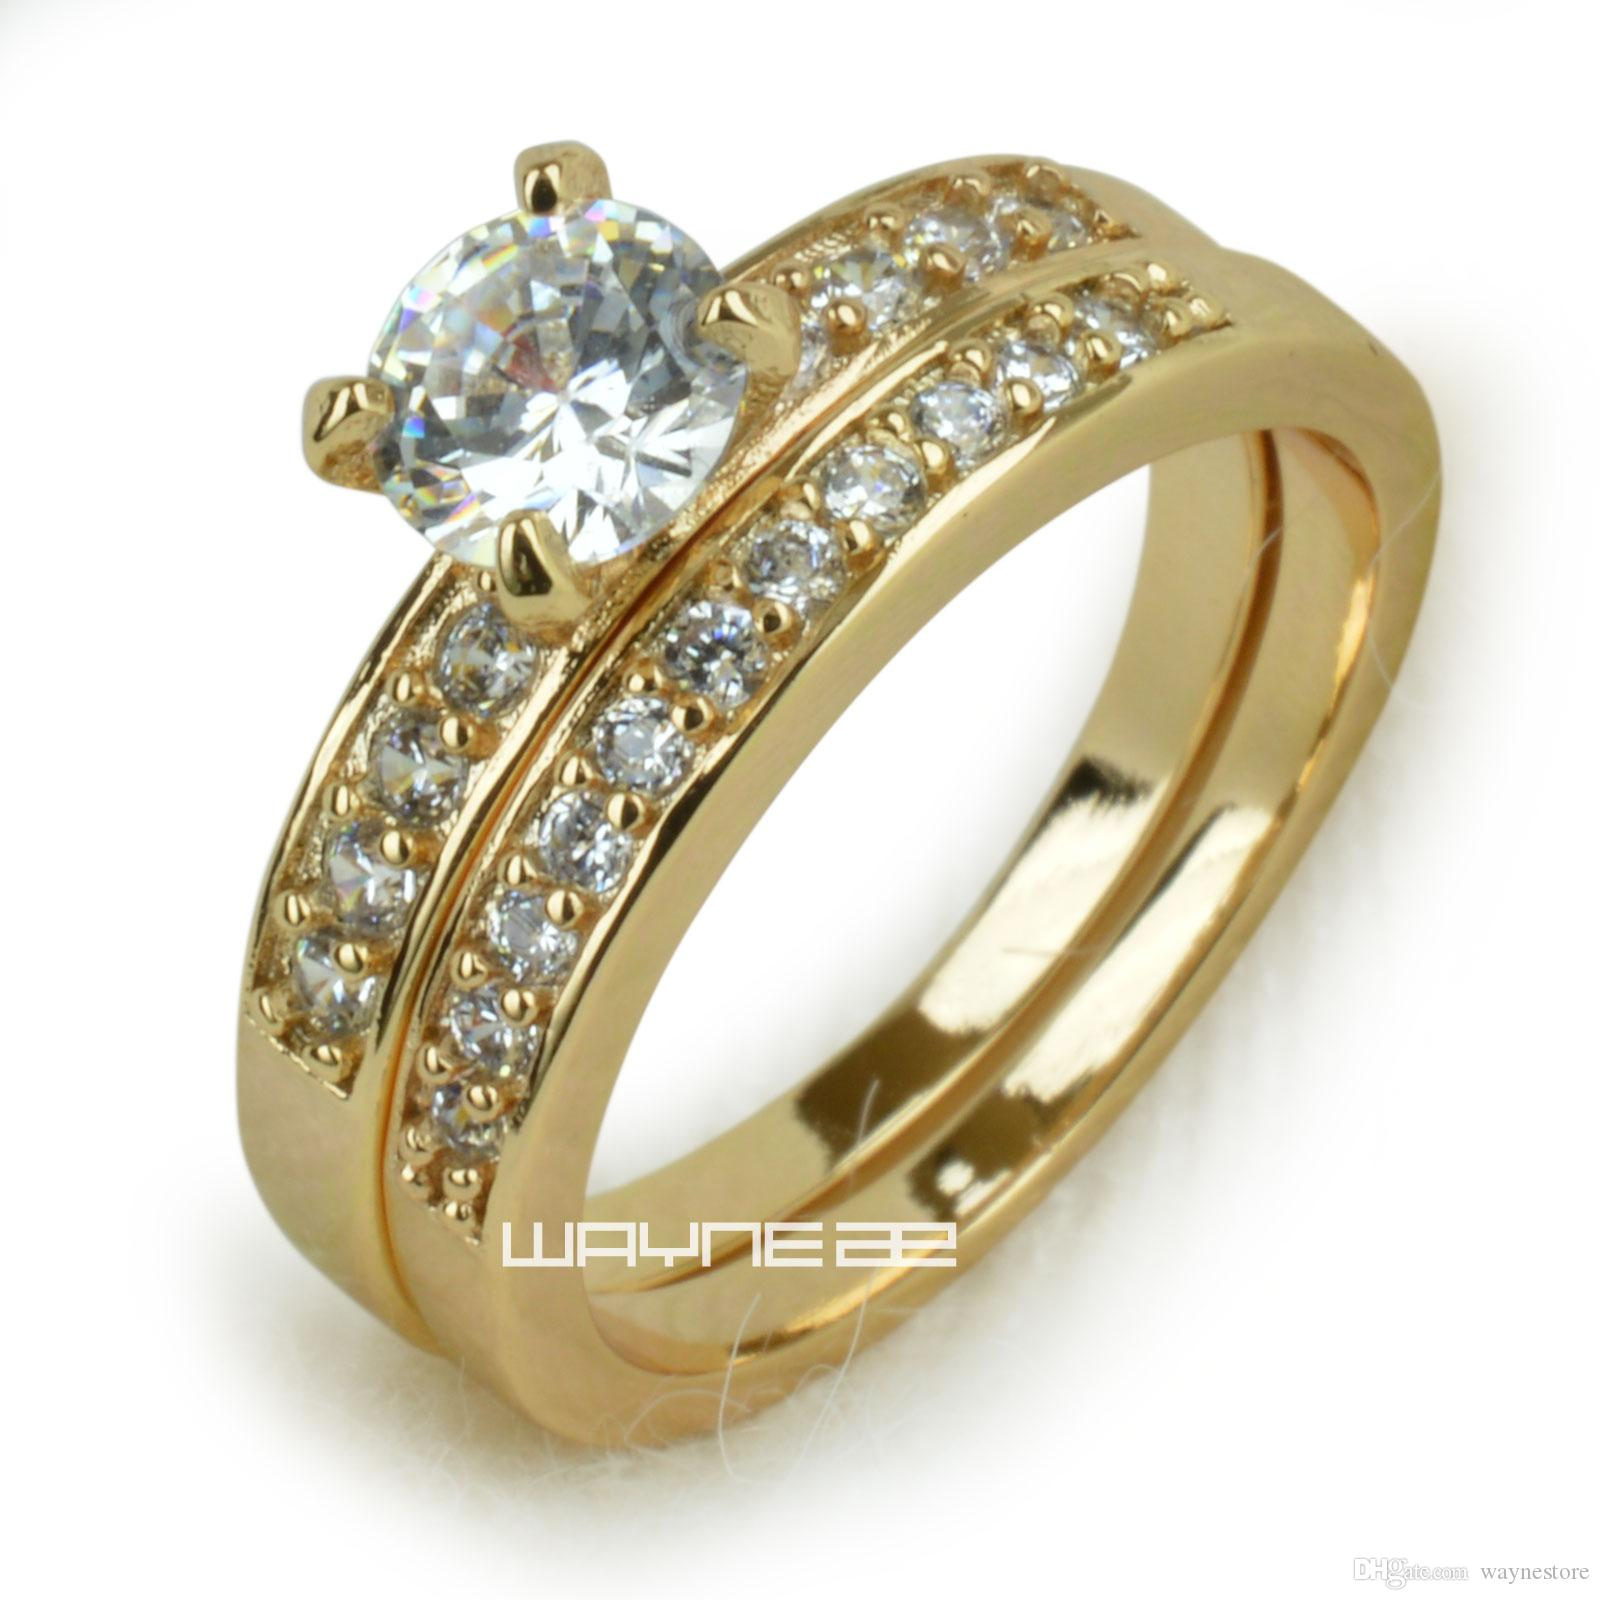 design with tcw ring fullxfull diamond in deco wedding unique listing cluster il yellow art birthstone engagement year gold rings vintage april anniversary